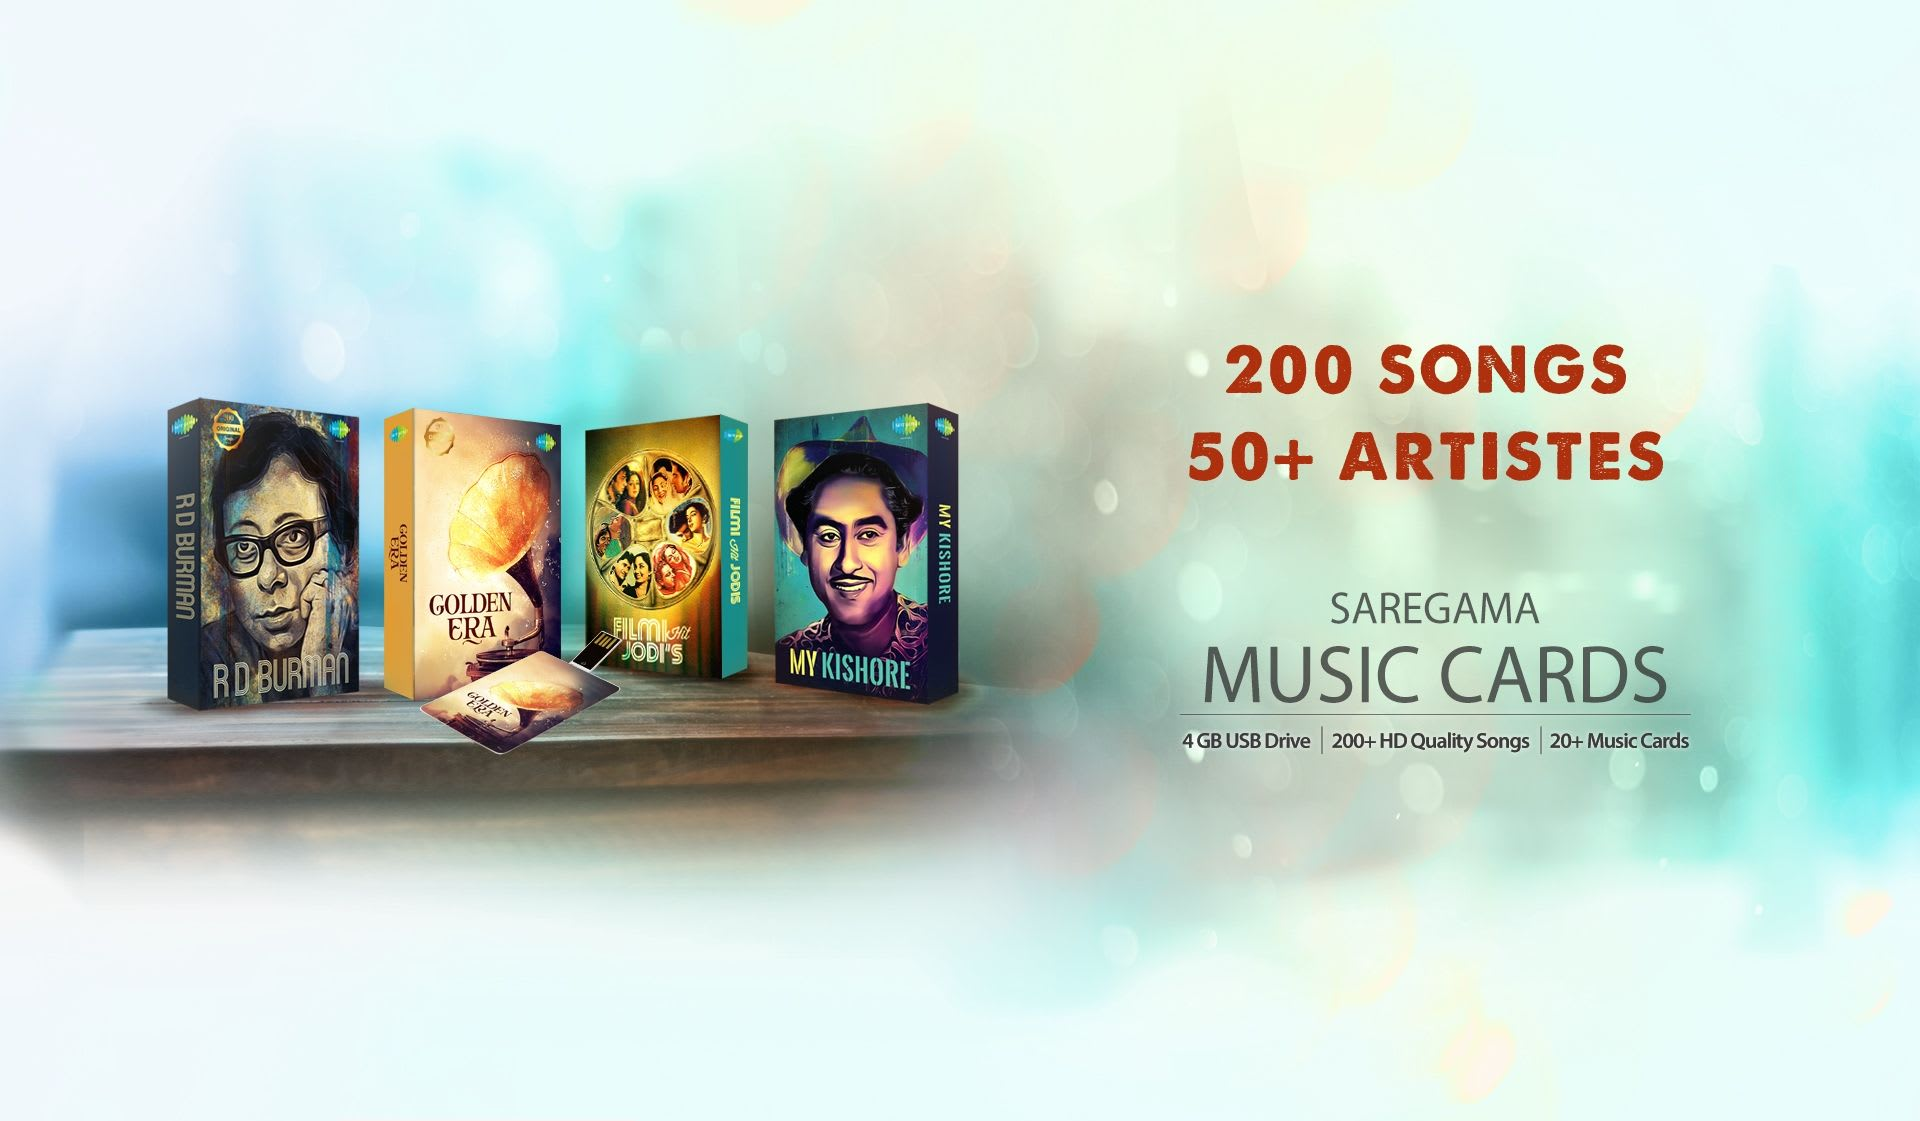 Music Card - 200 Songs, 50 + Artiste